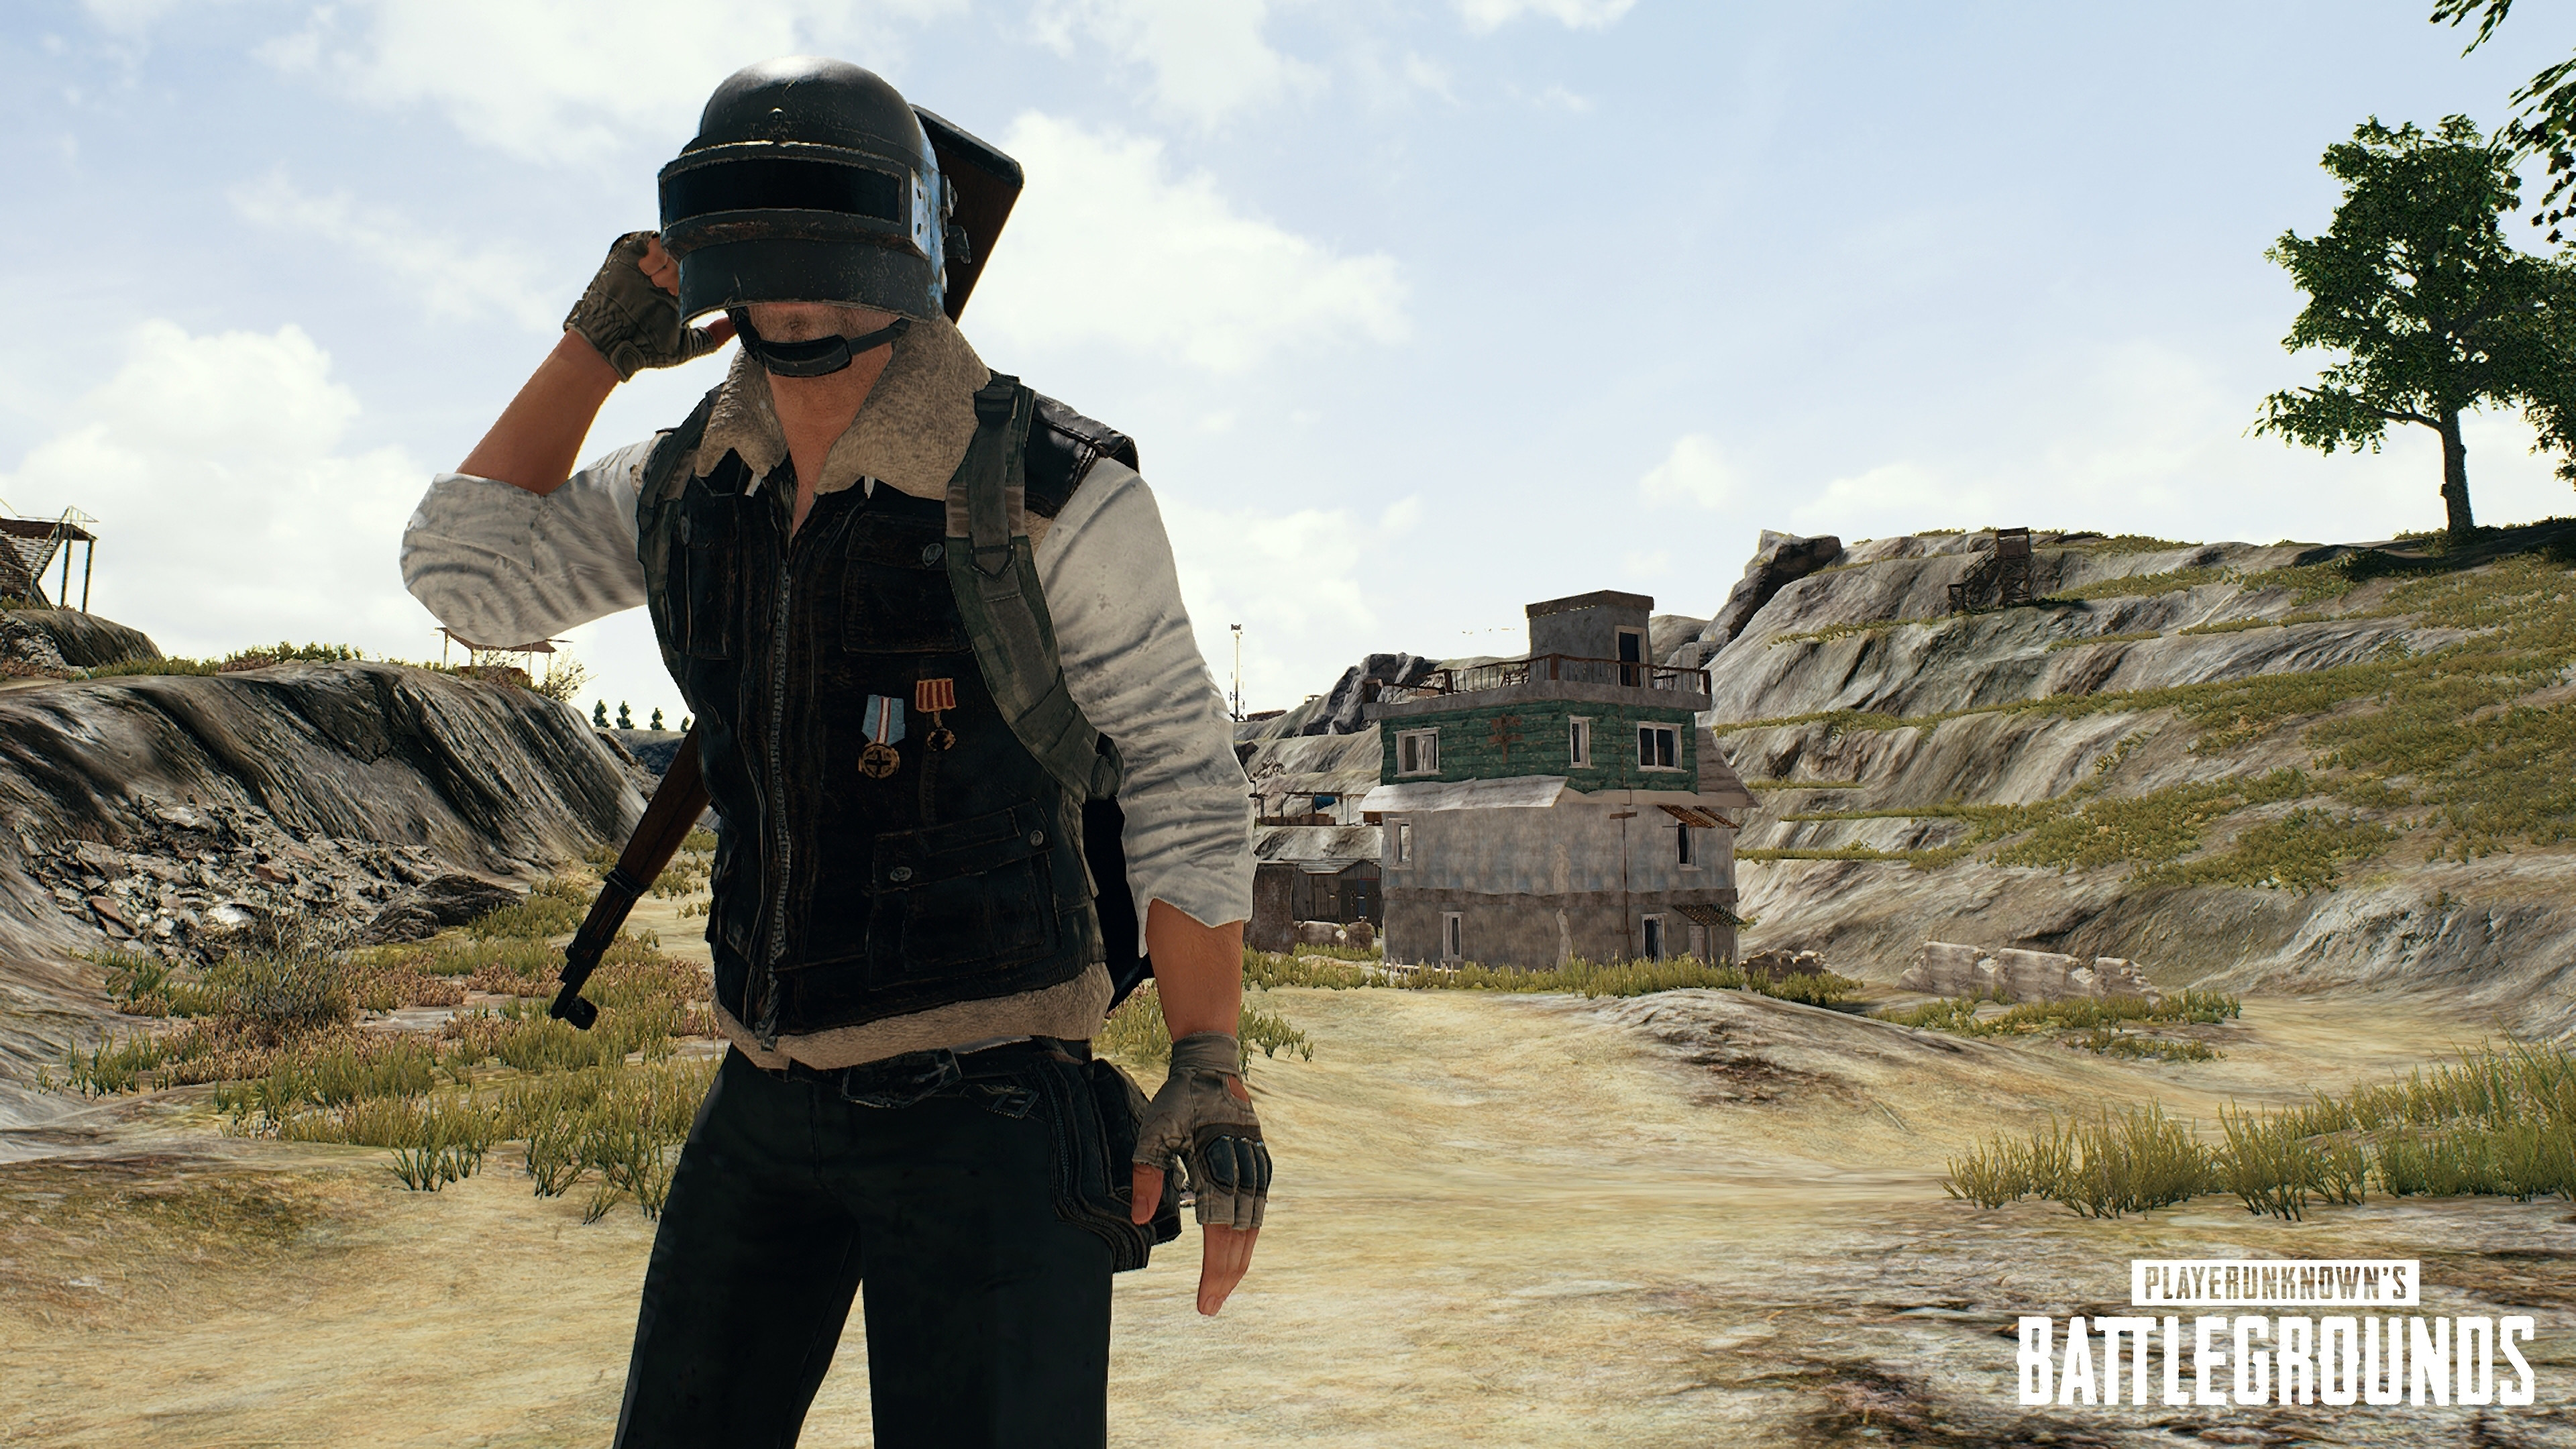 PUBG PUBG PlayerUnknown's Battlegrounds 4K Wallpaper